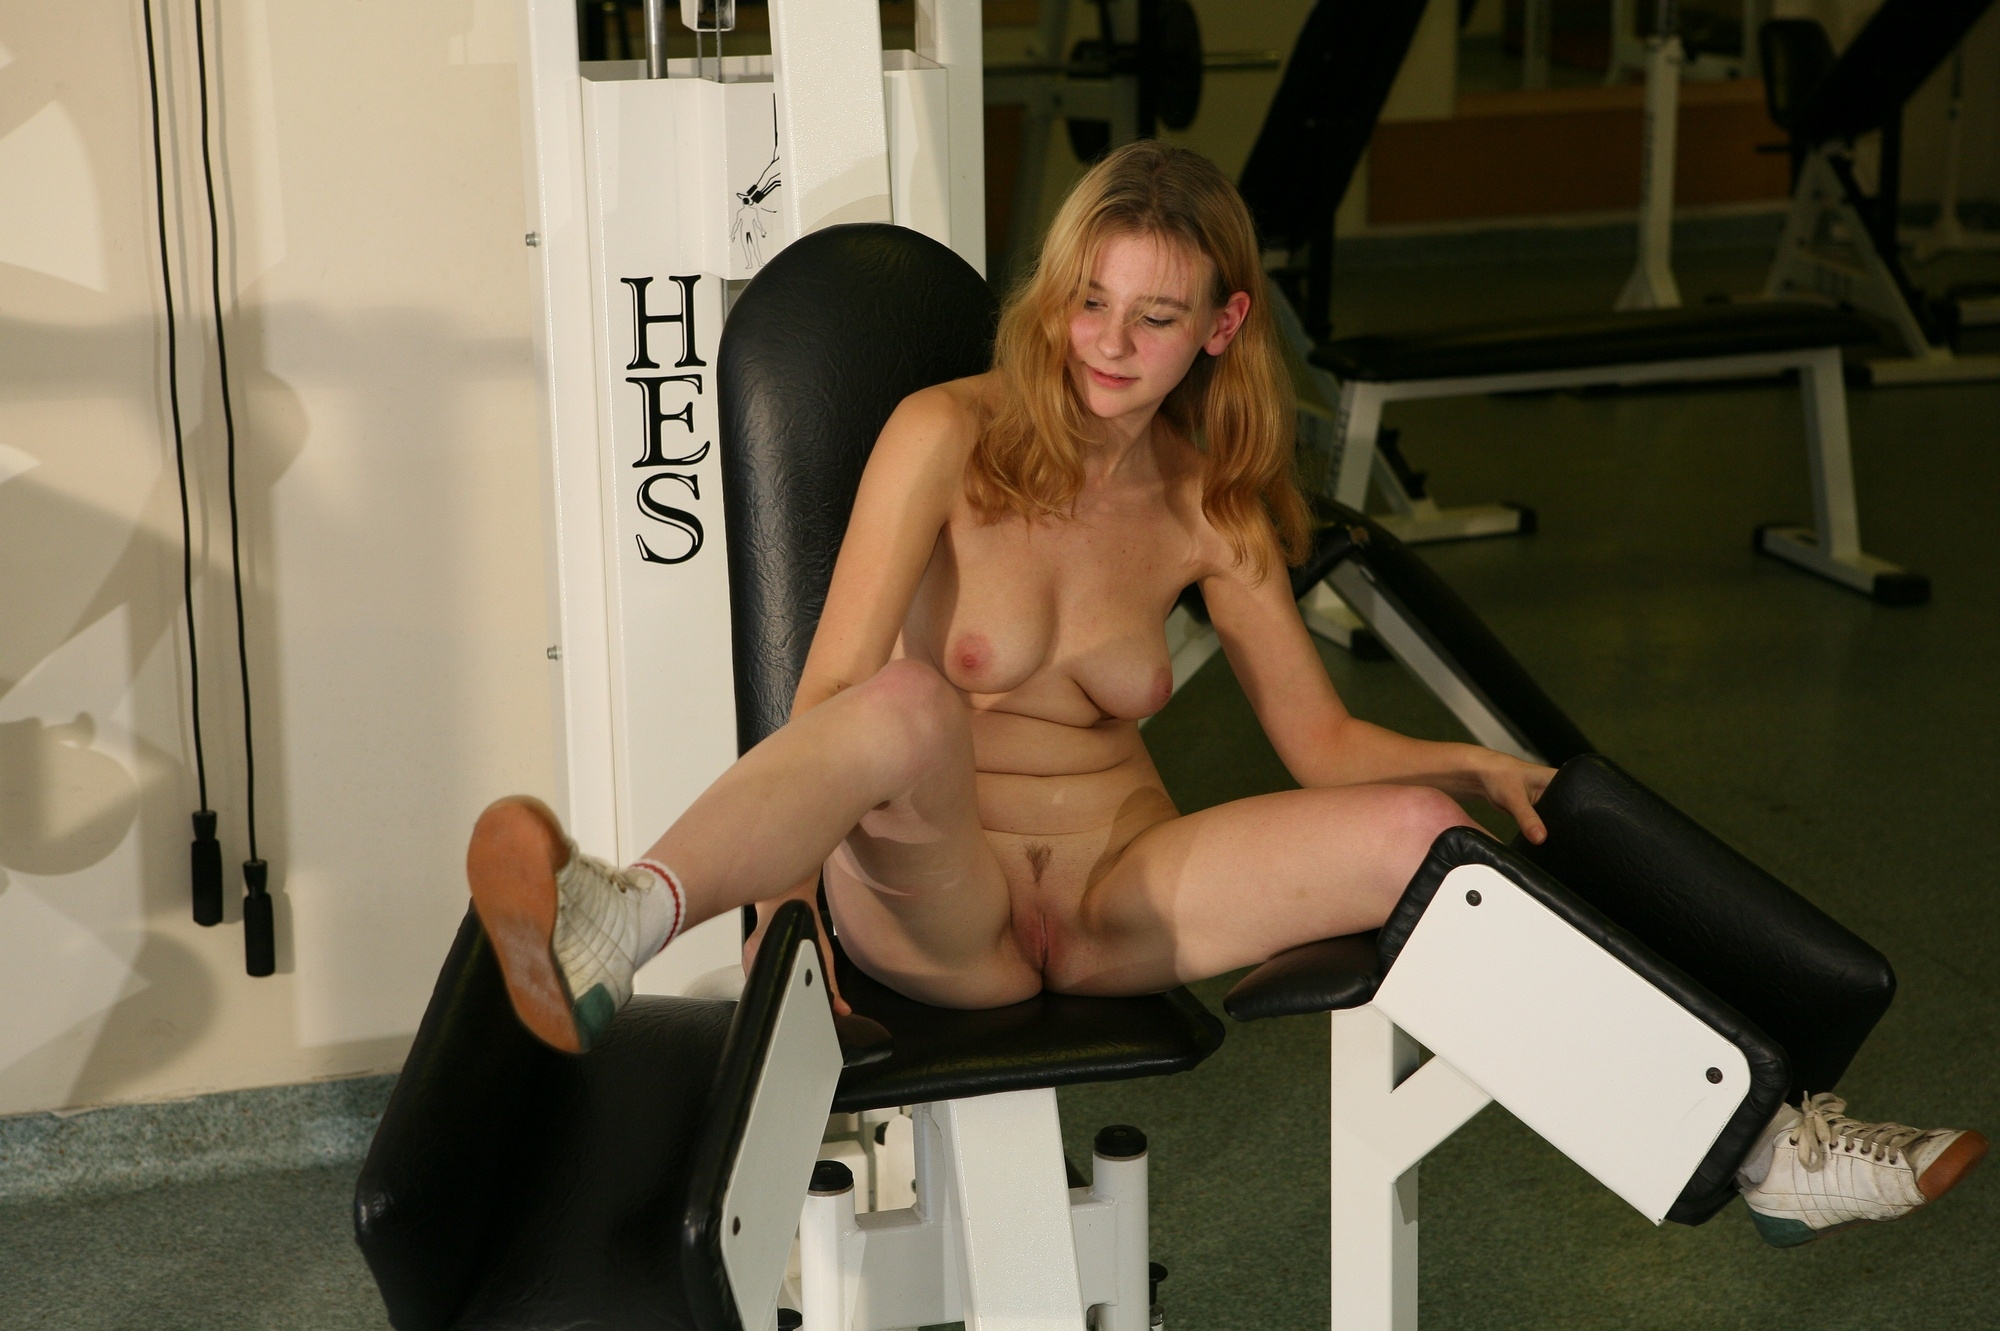 girls-in-sexy-gym-were-with-legs-spread-images